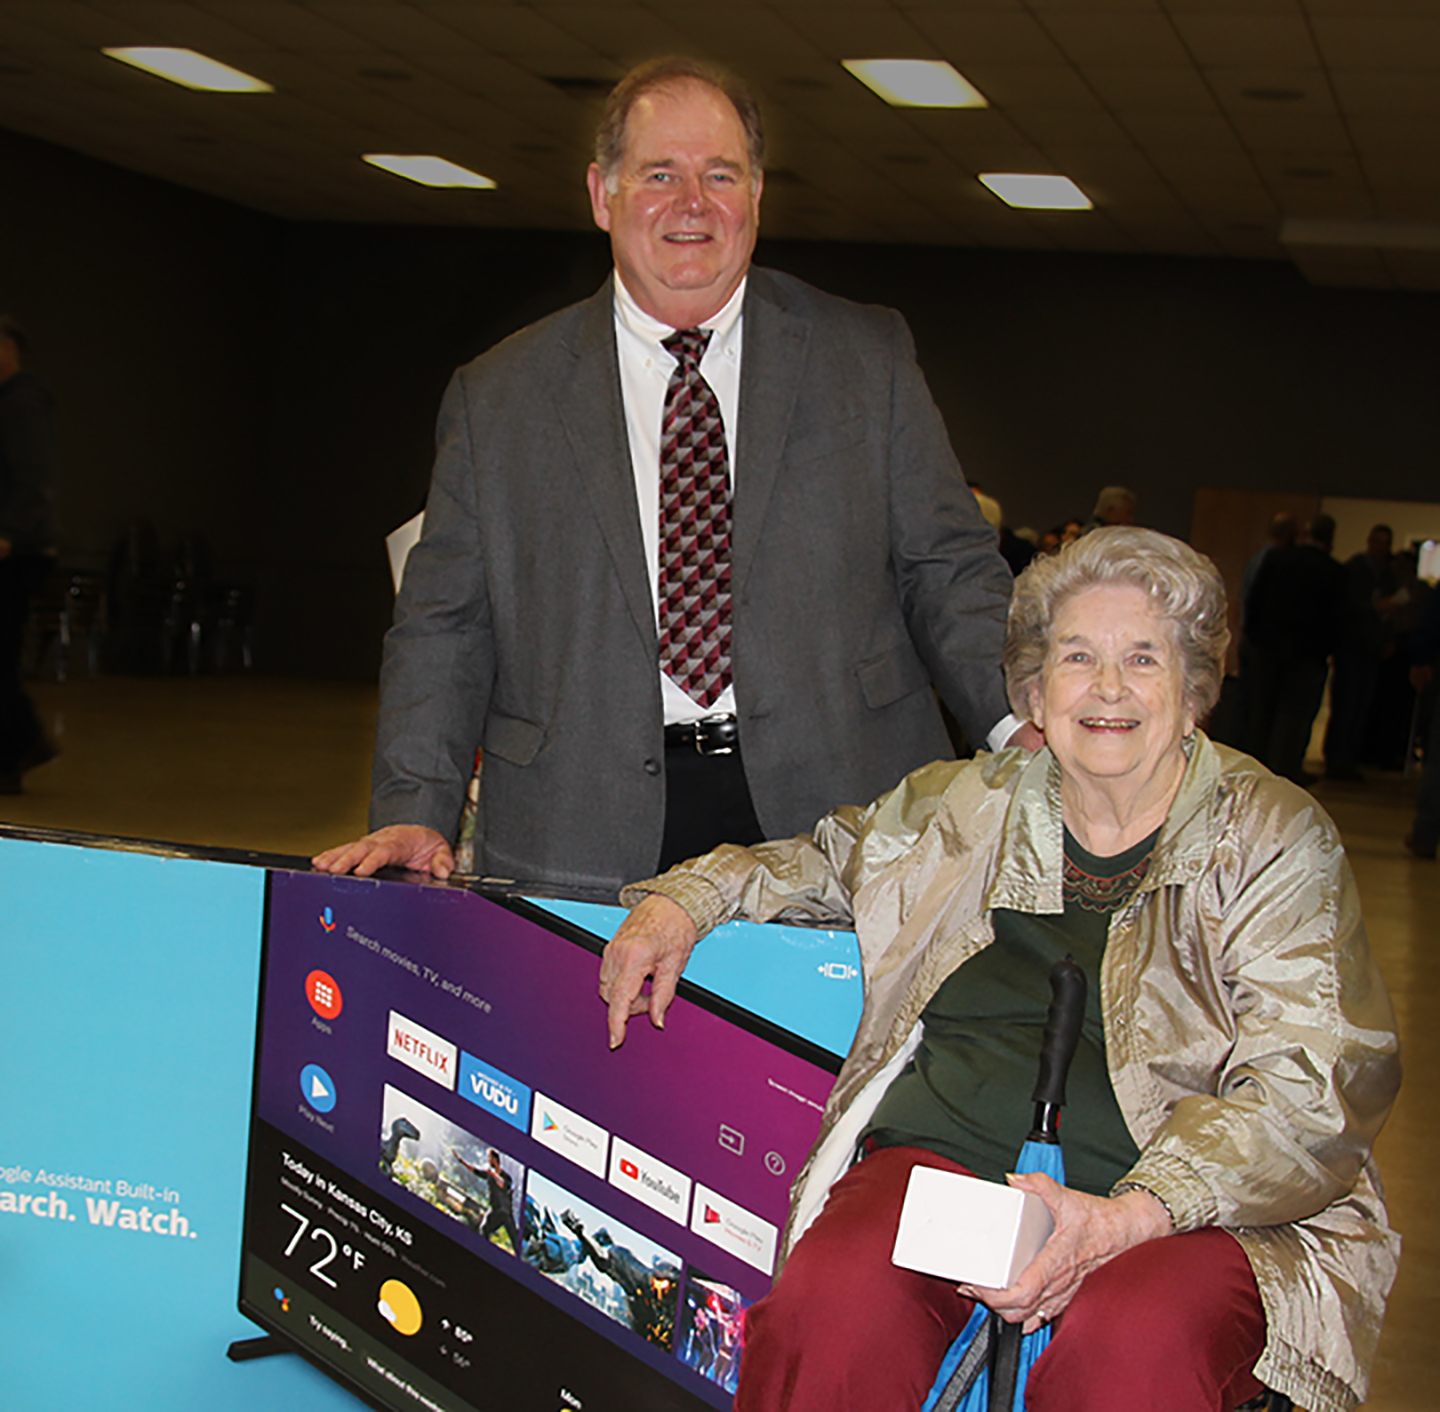 Annual Meeting Grand Prize TV Winner